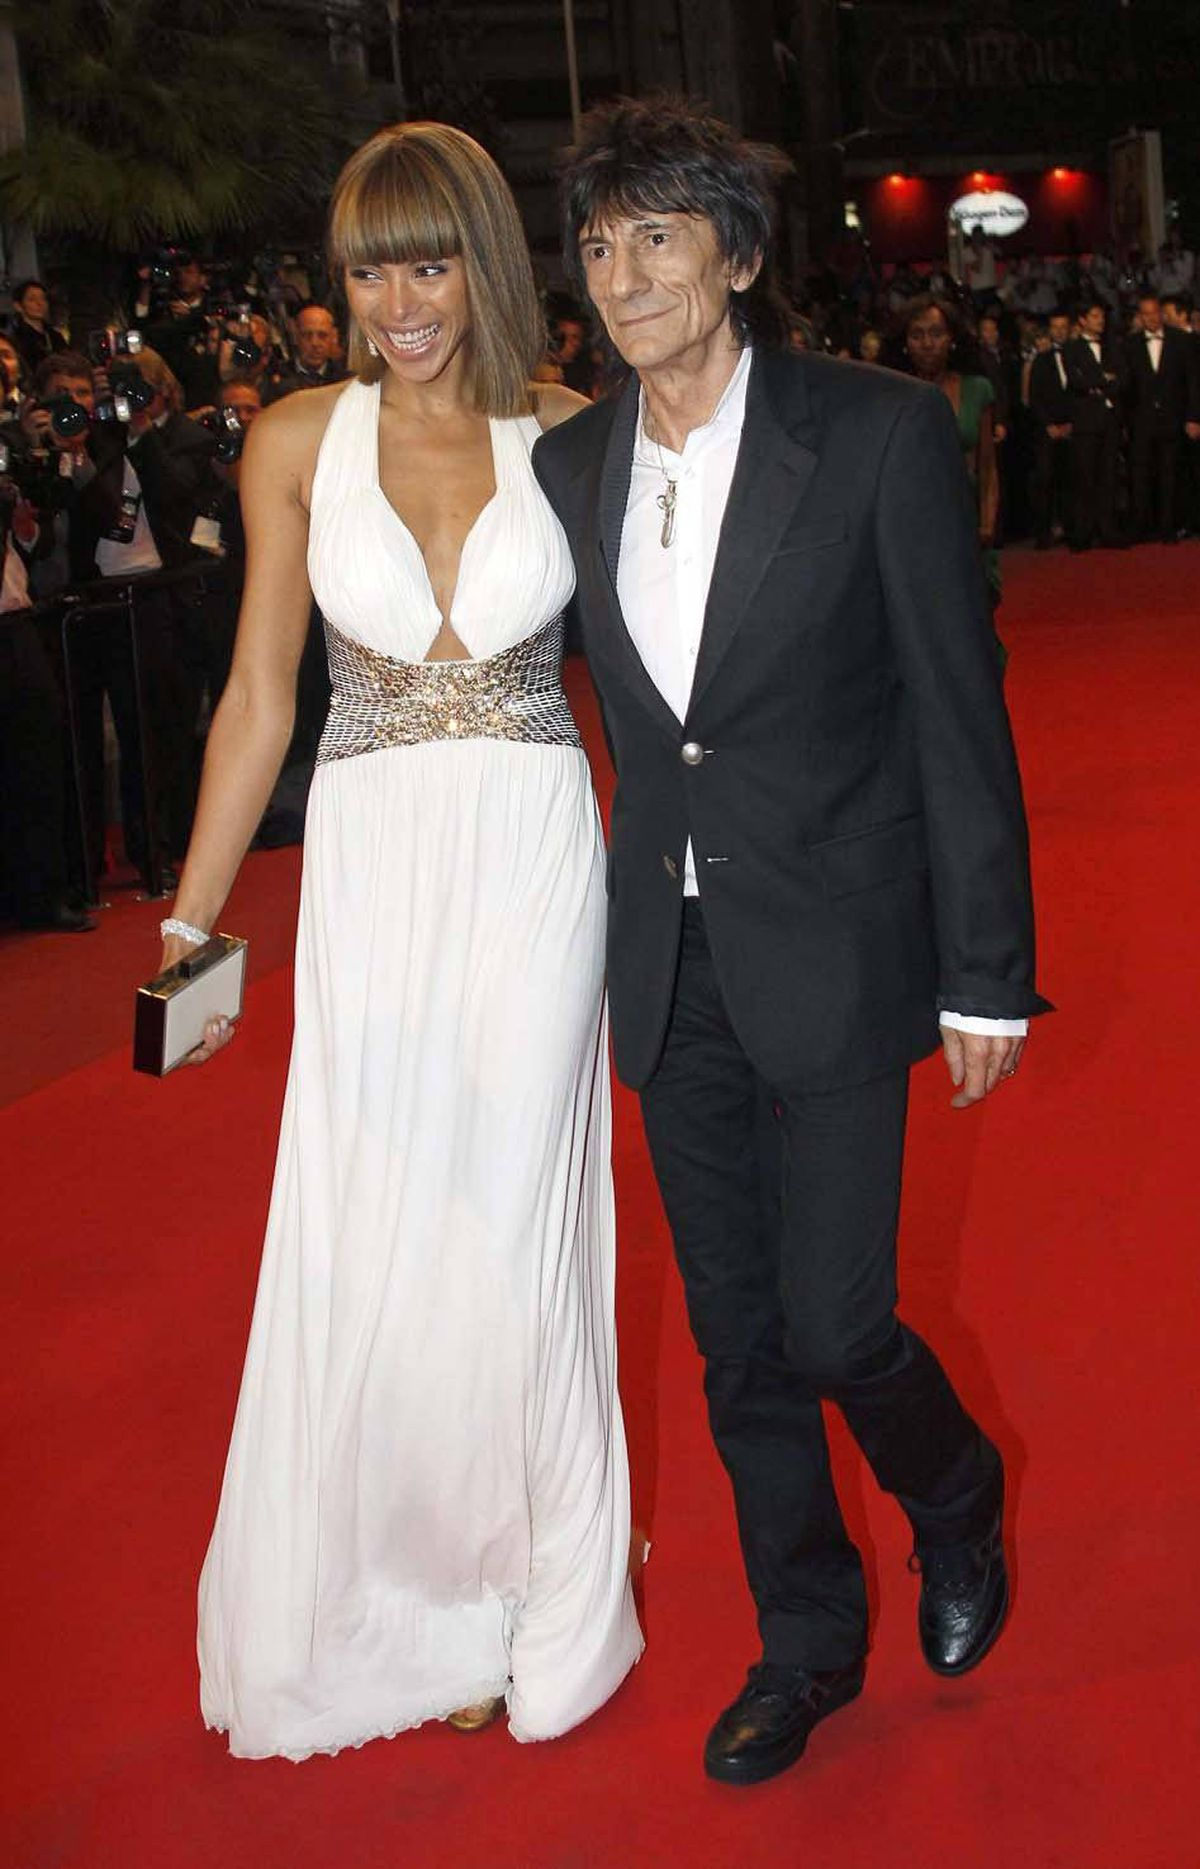 """Rolling Stones' guitarist Ron Wood and his girlfriend Ana Araujo on the red carpet for the screening of the film """"Melancholia"""" at the Cannes Film Festival on Wednesday."""